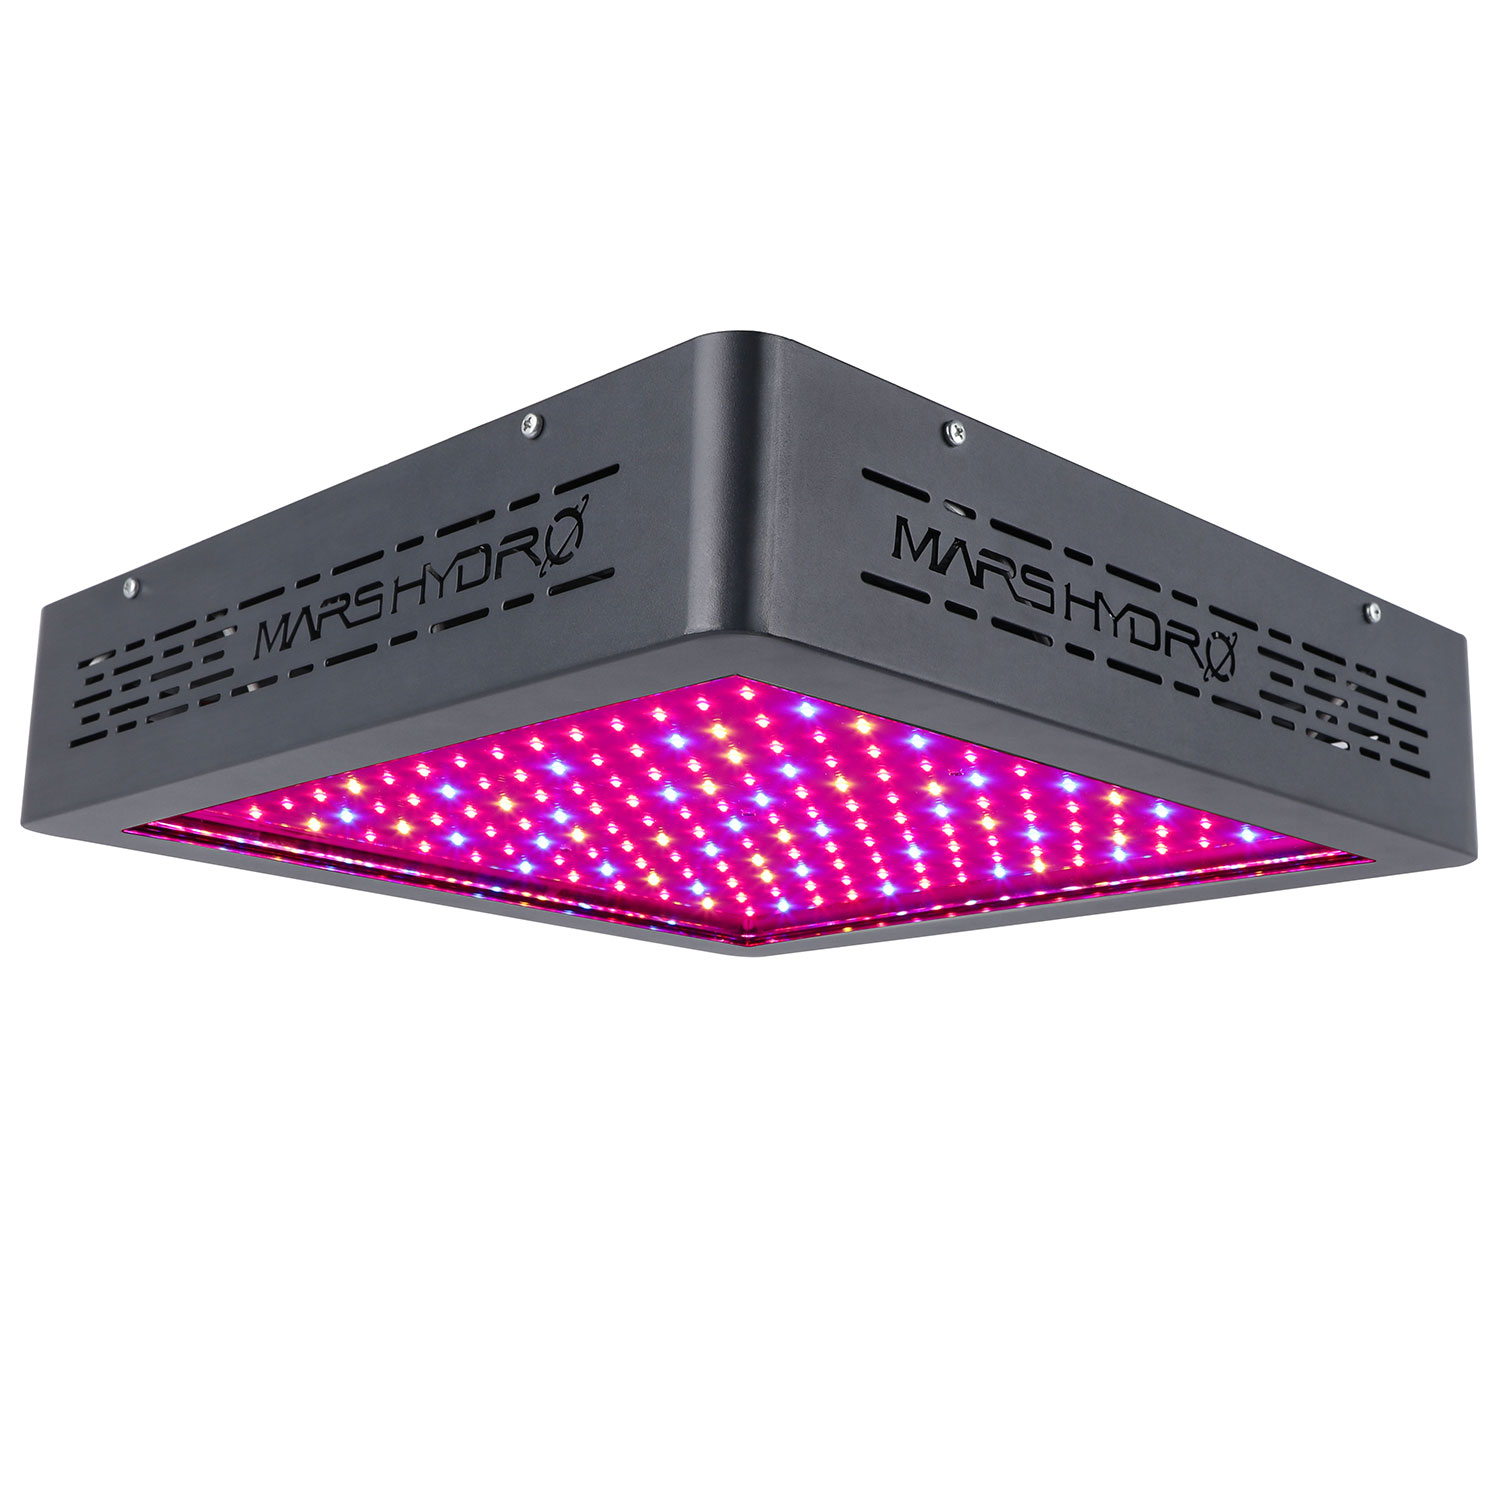 Mars II 900W LED Grow Light Hydro Indoor Plant Full Spectrum IR Hydroponic Plant Growing Lamp For Veg Flower Seedling Flowering Budding Vegetative Bulb Kits Low Electricity Cost